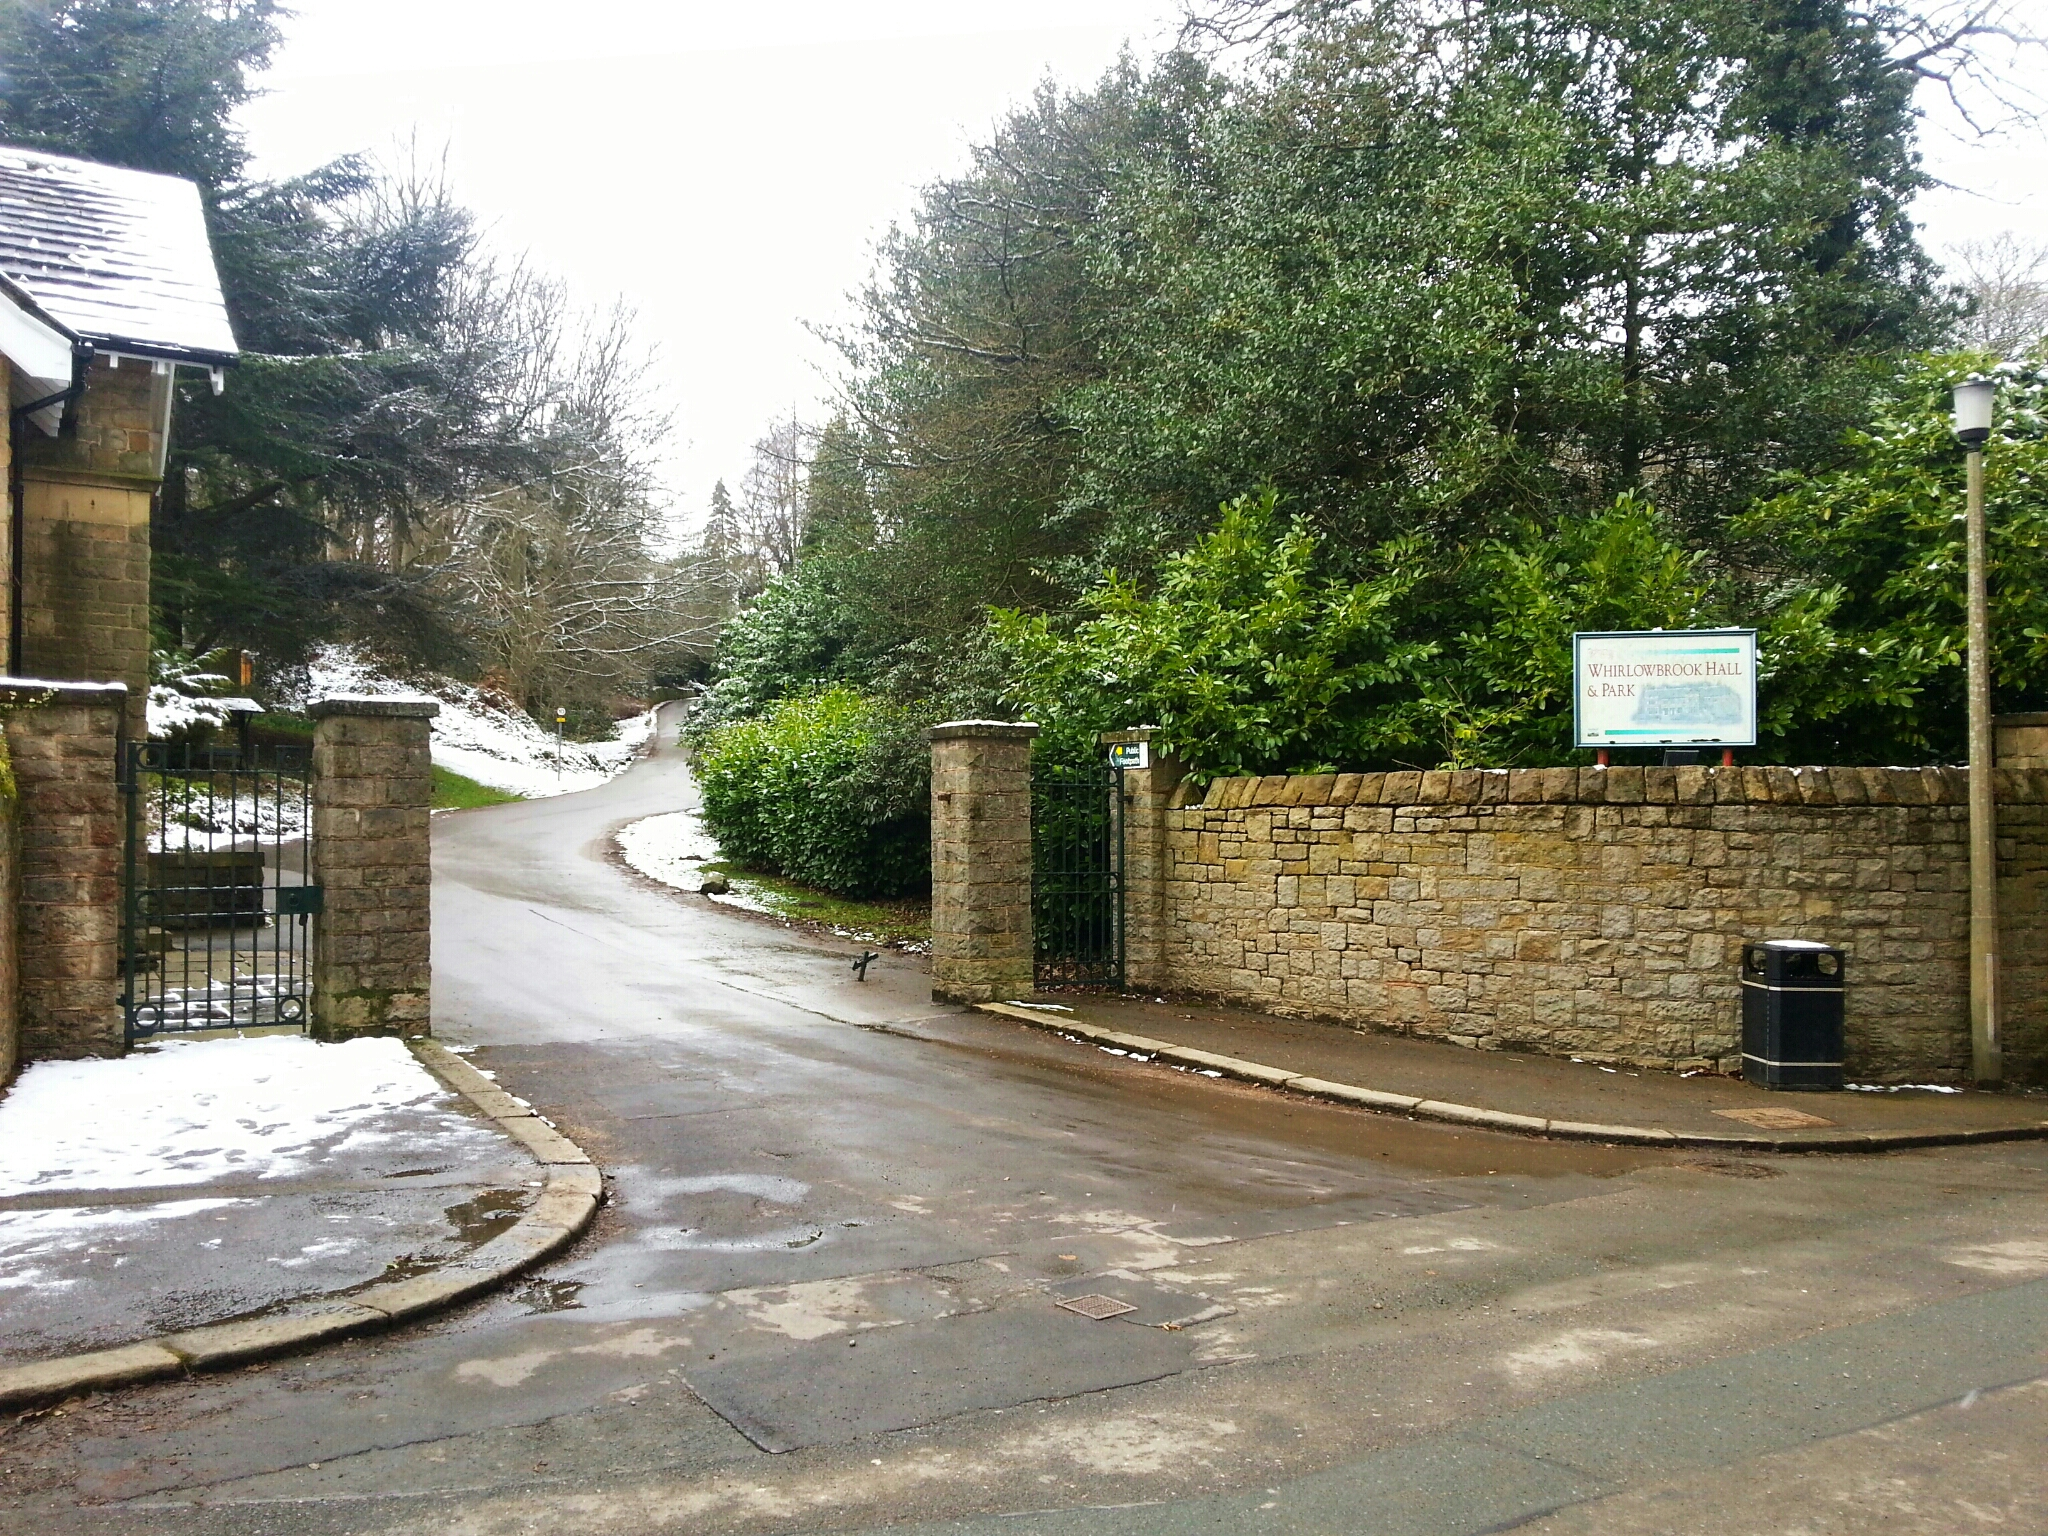 The entrance to Whirlow Brook Park.